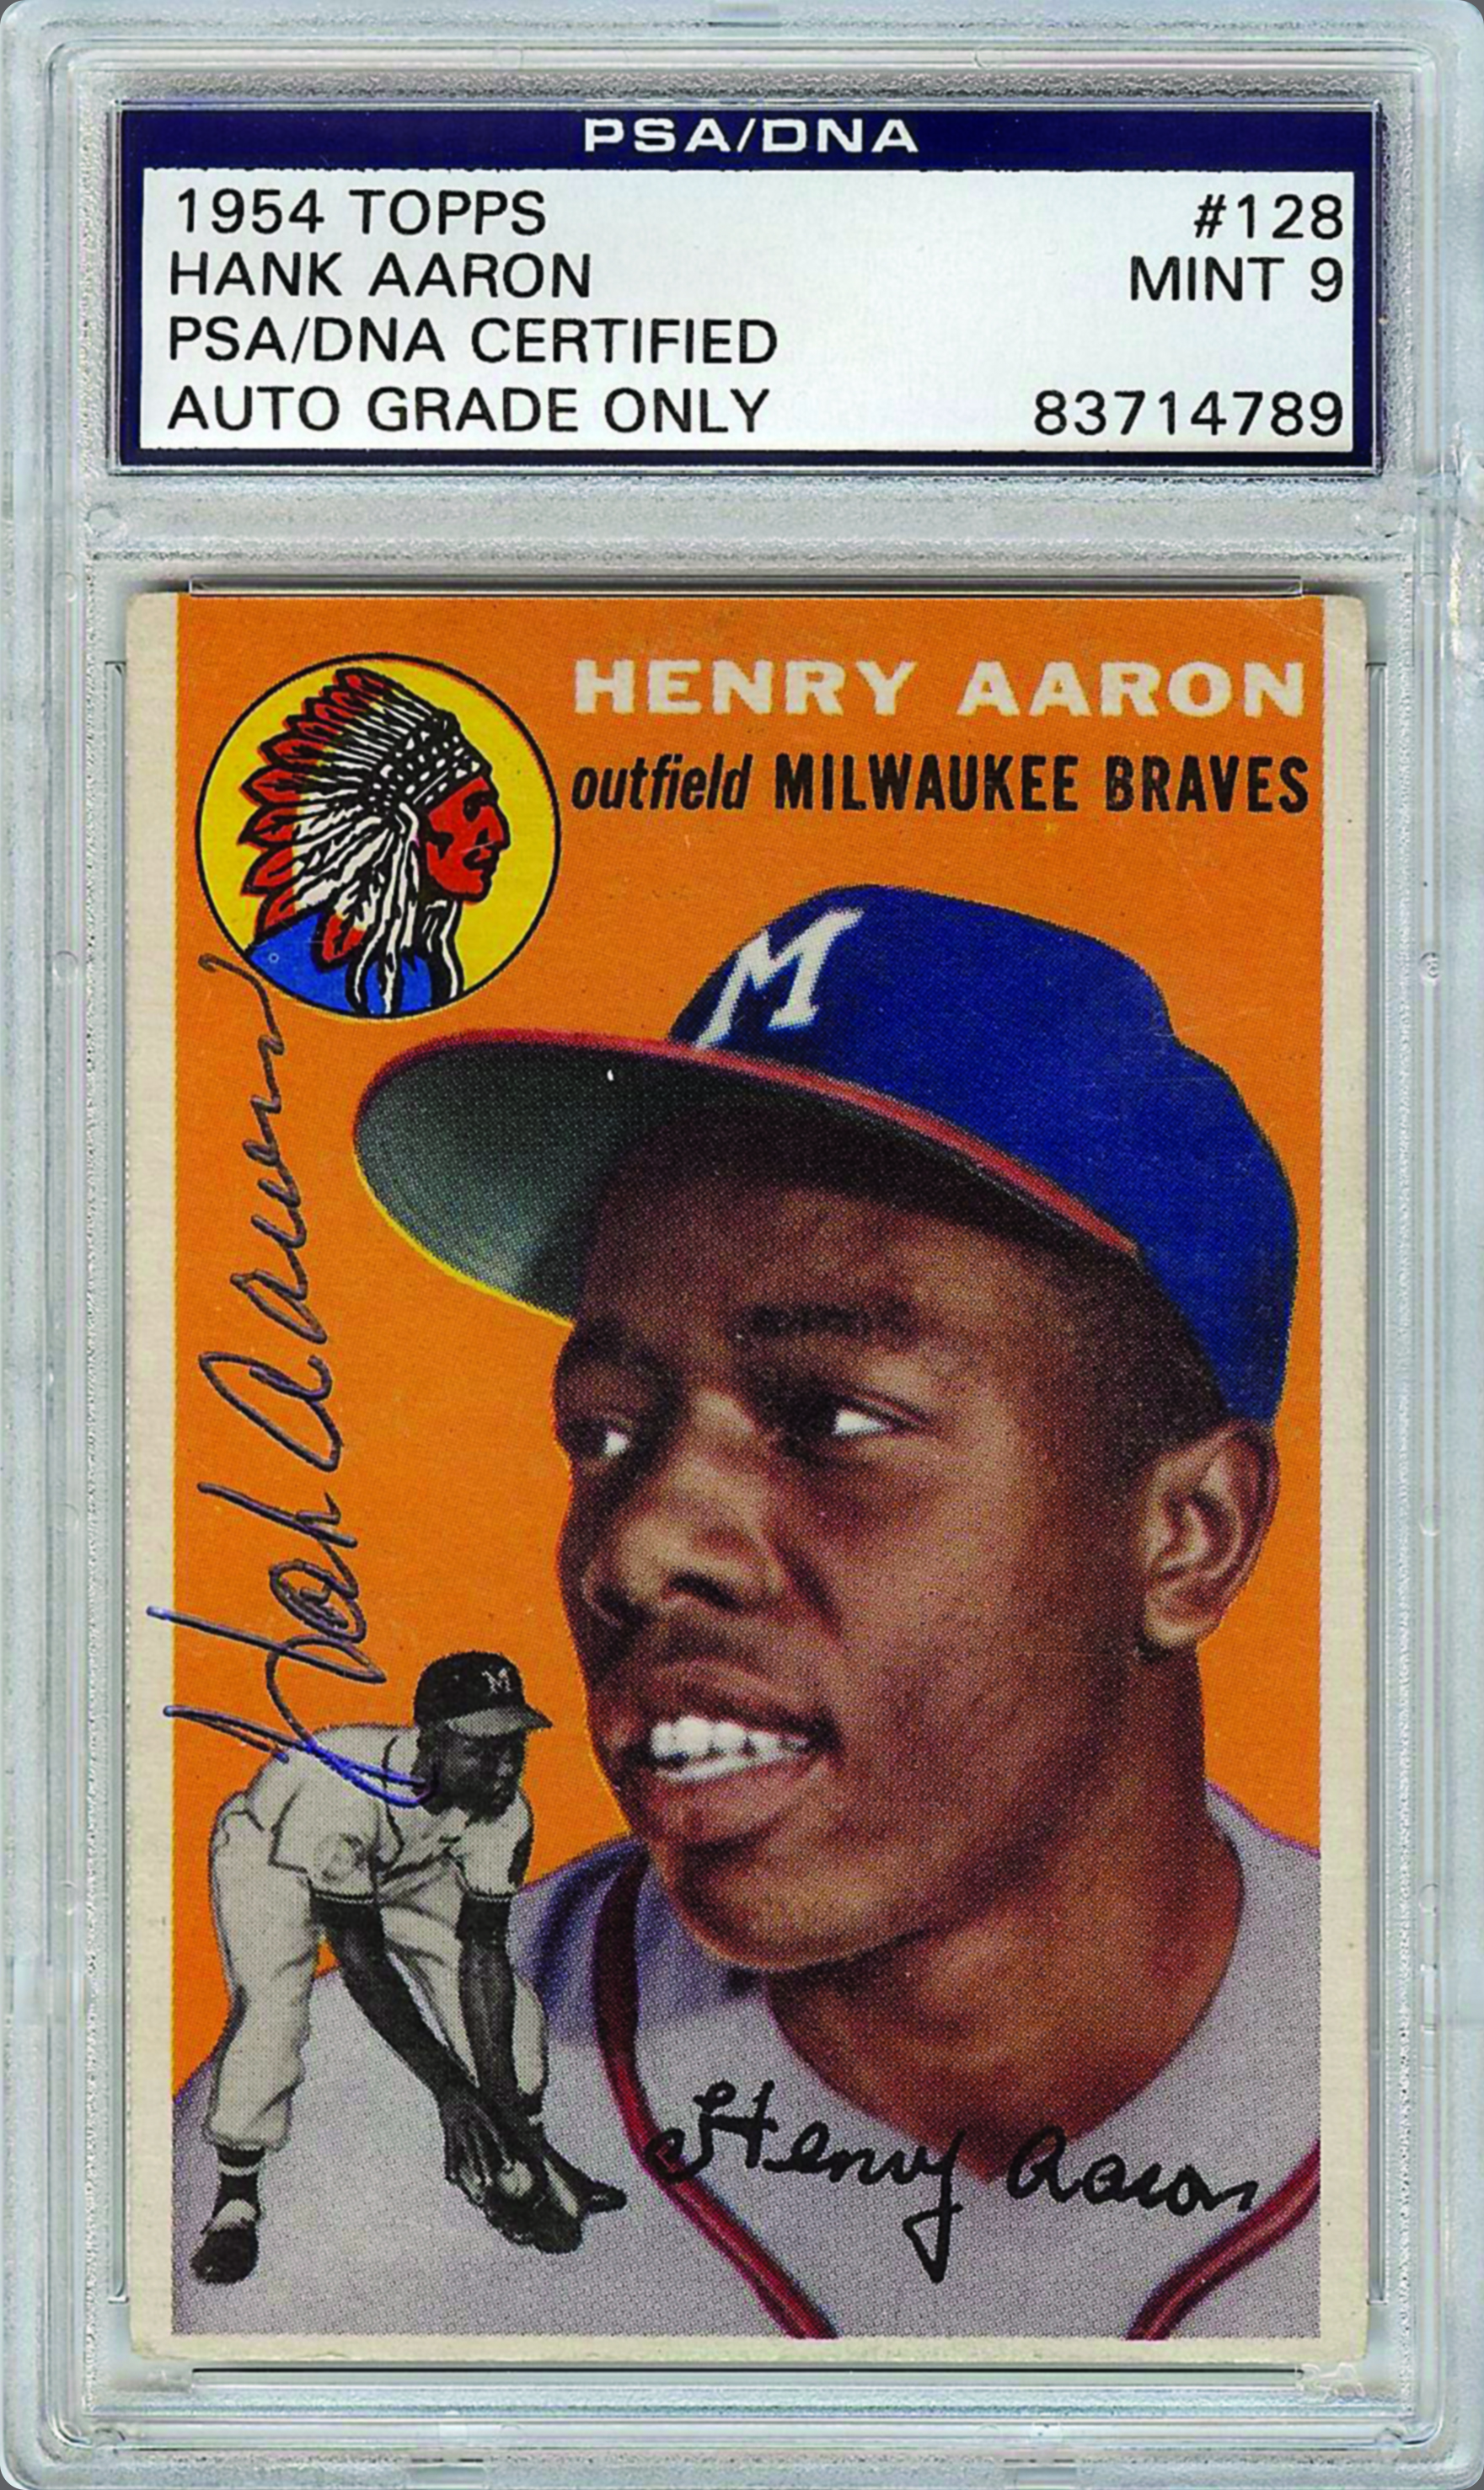 Topps 1954 Hank Aaron signed card